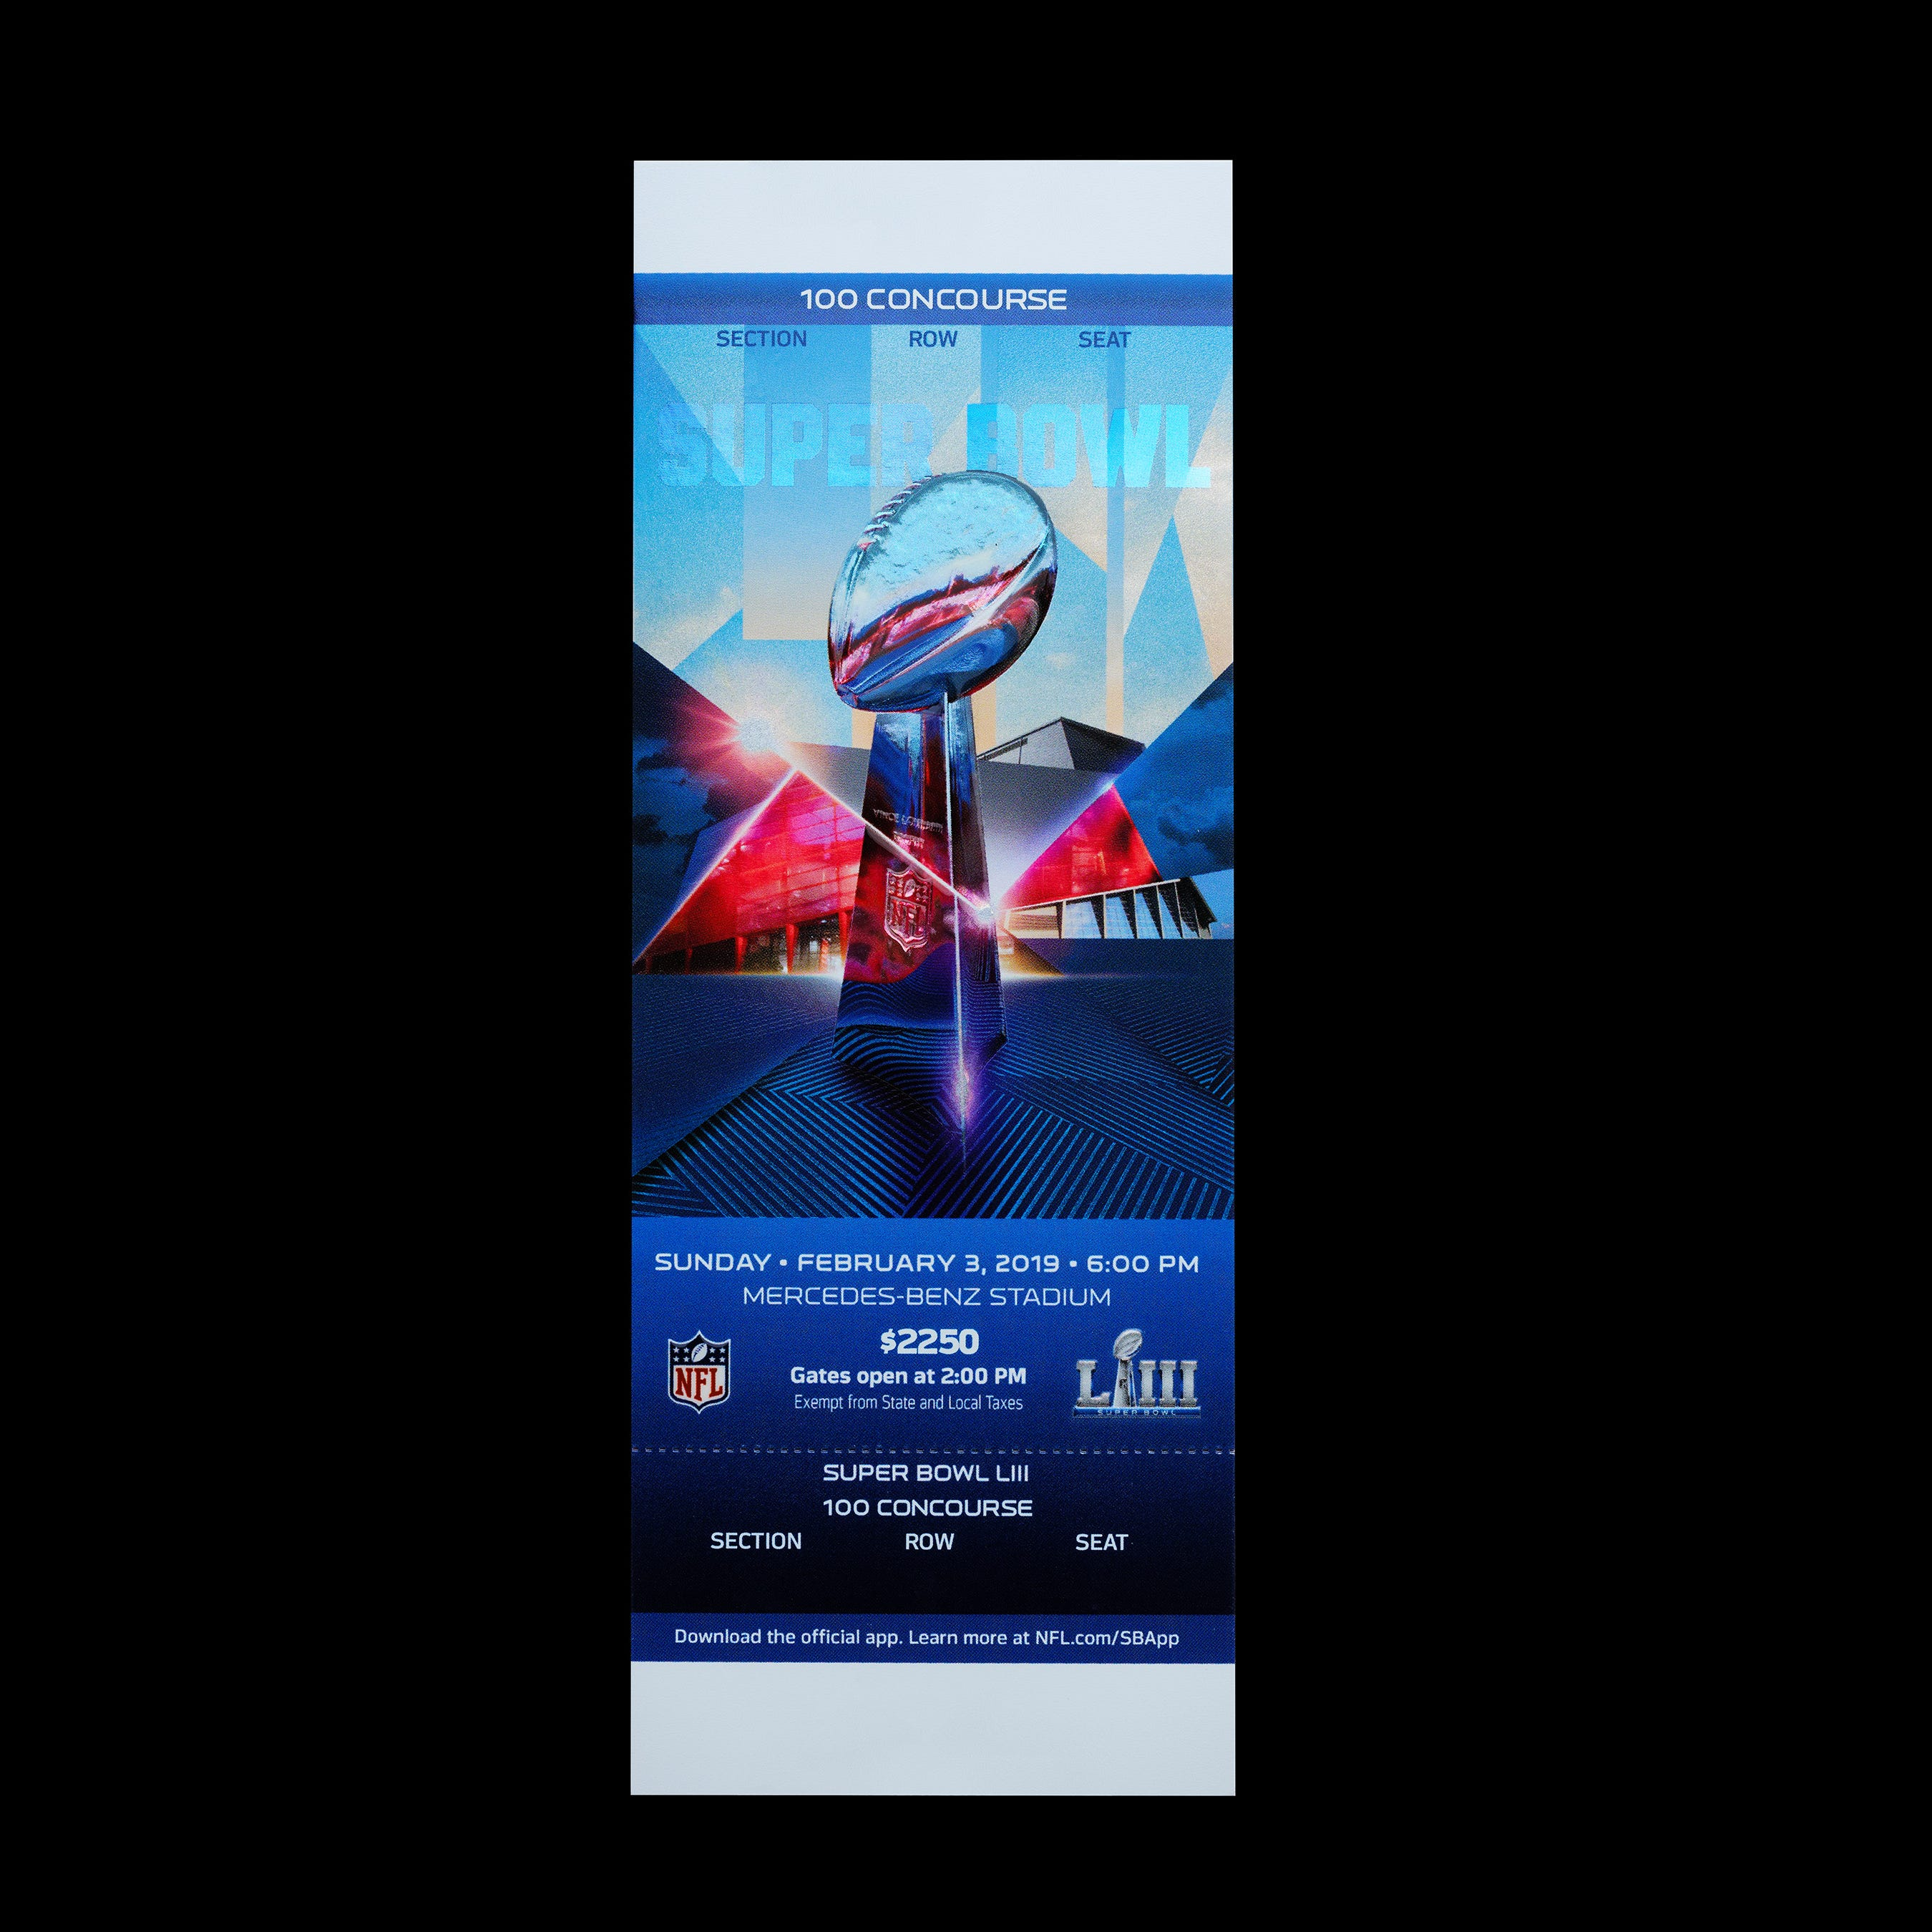 UPDATED Super Bowl 2019 tickets: From $46K for Maxim Party, to $86K for 6-person suite